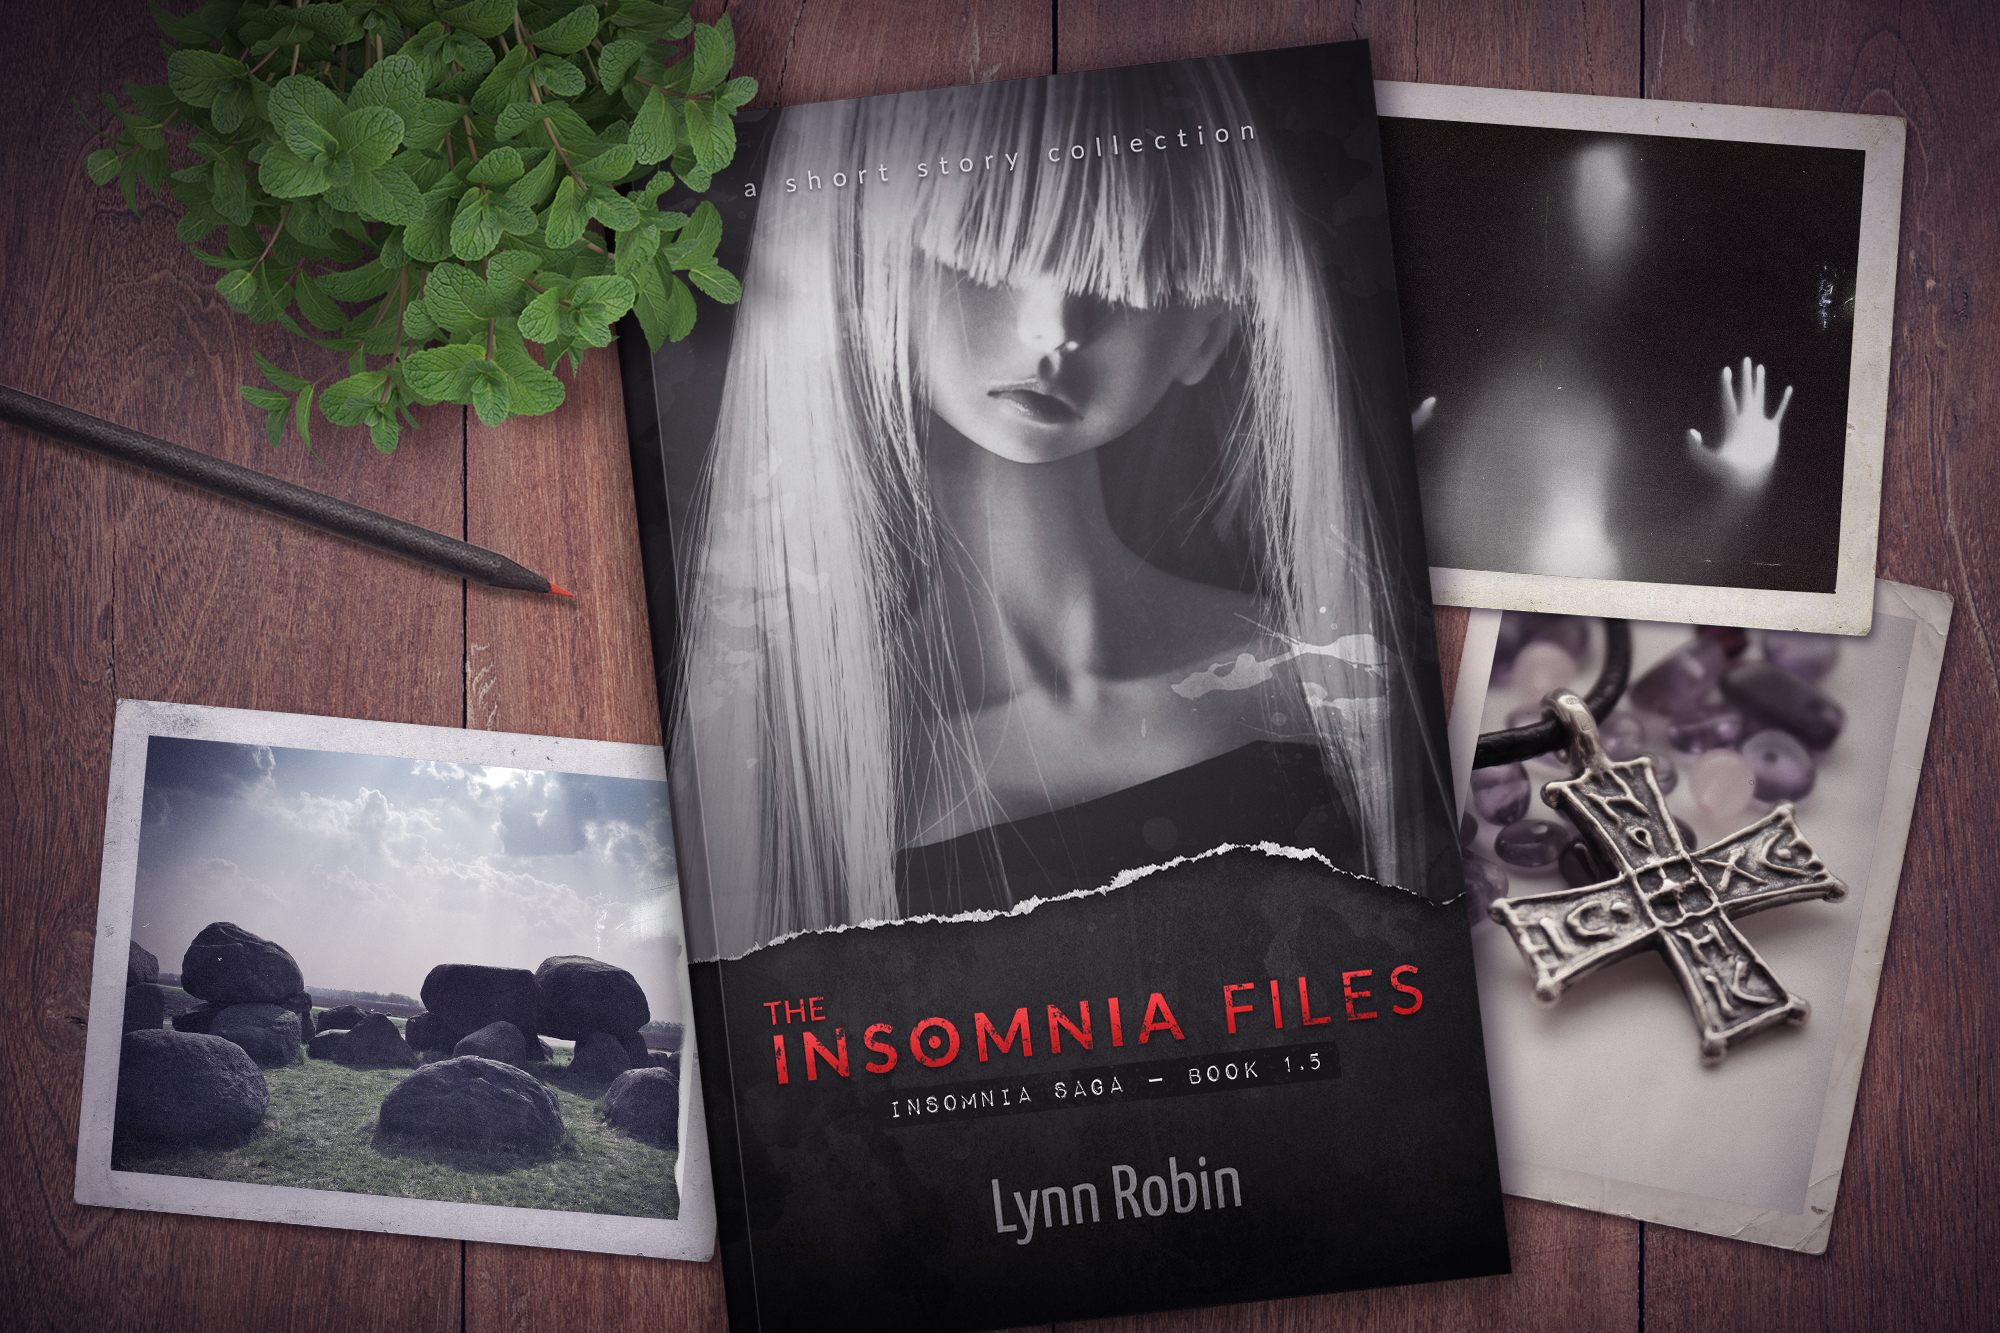 The Insomnia Files TEASER | File #3: ALAIN SOMNUS (Prologue)